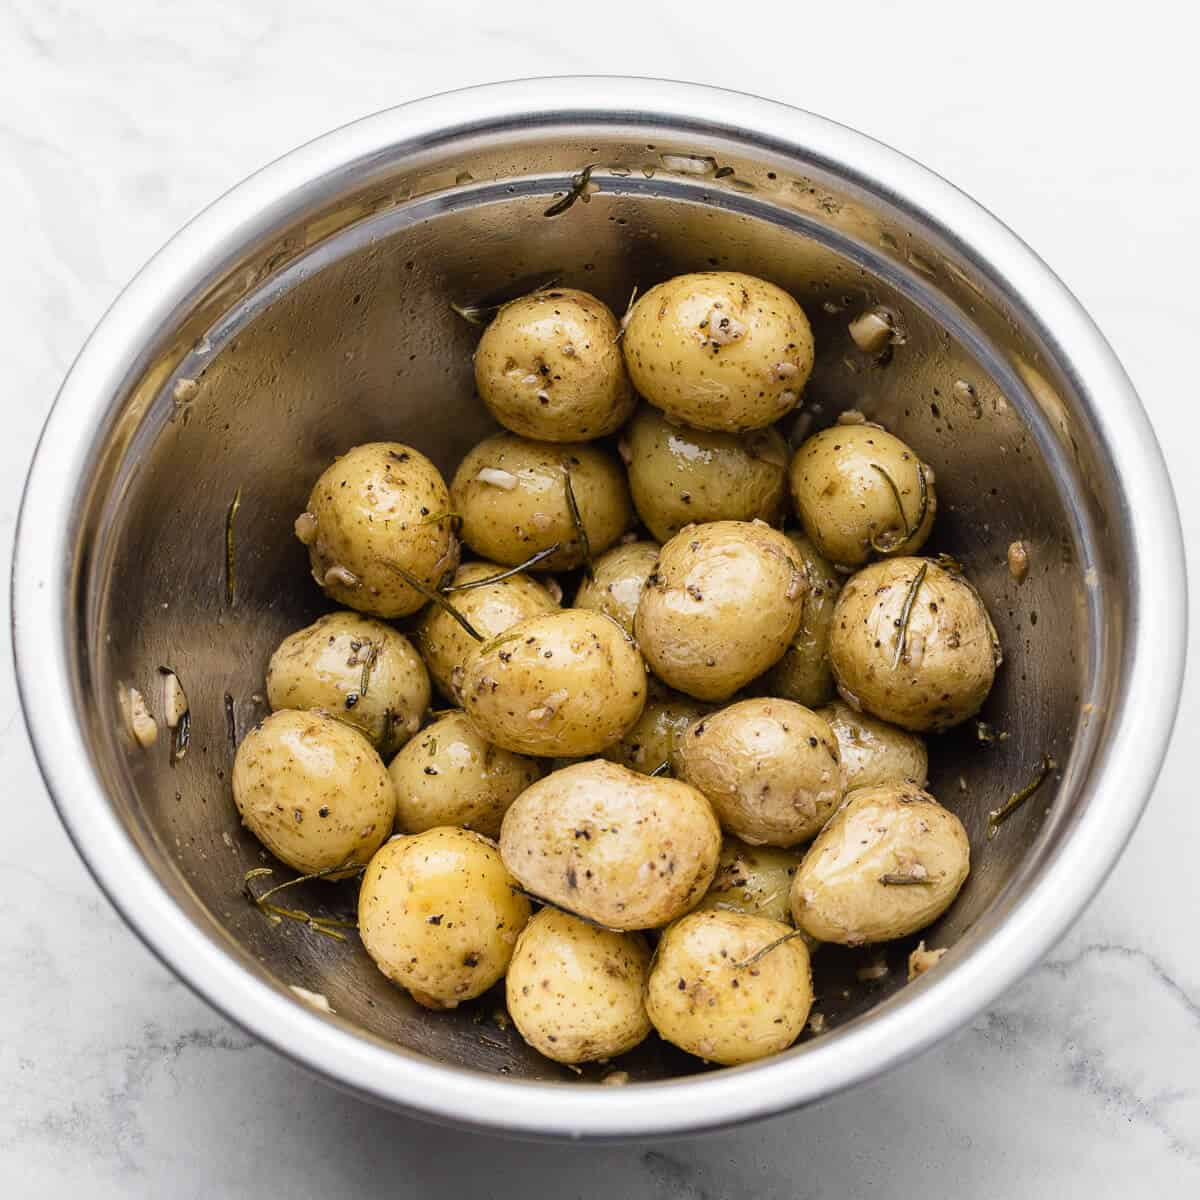 baked baby potatoes in stainless steel bowl on marble